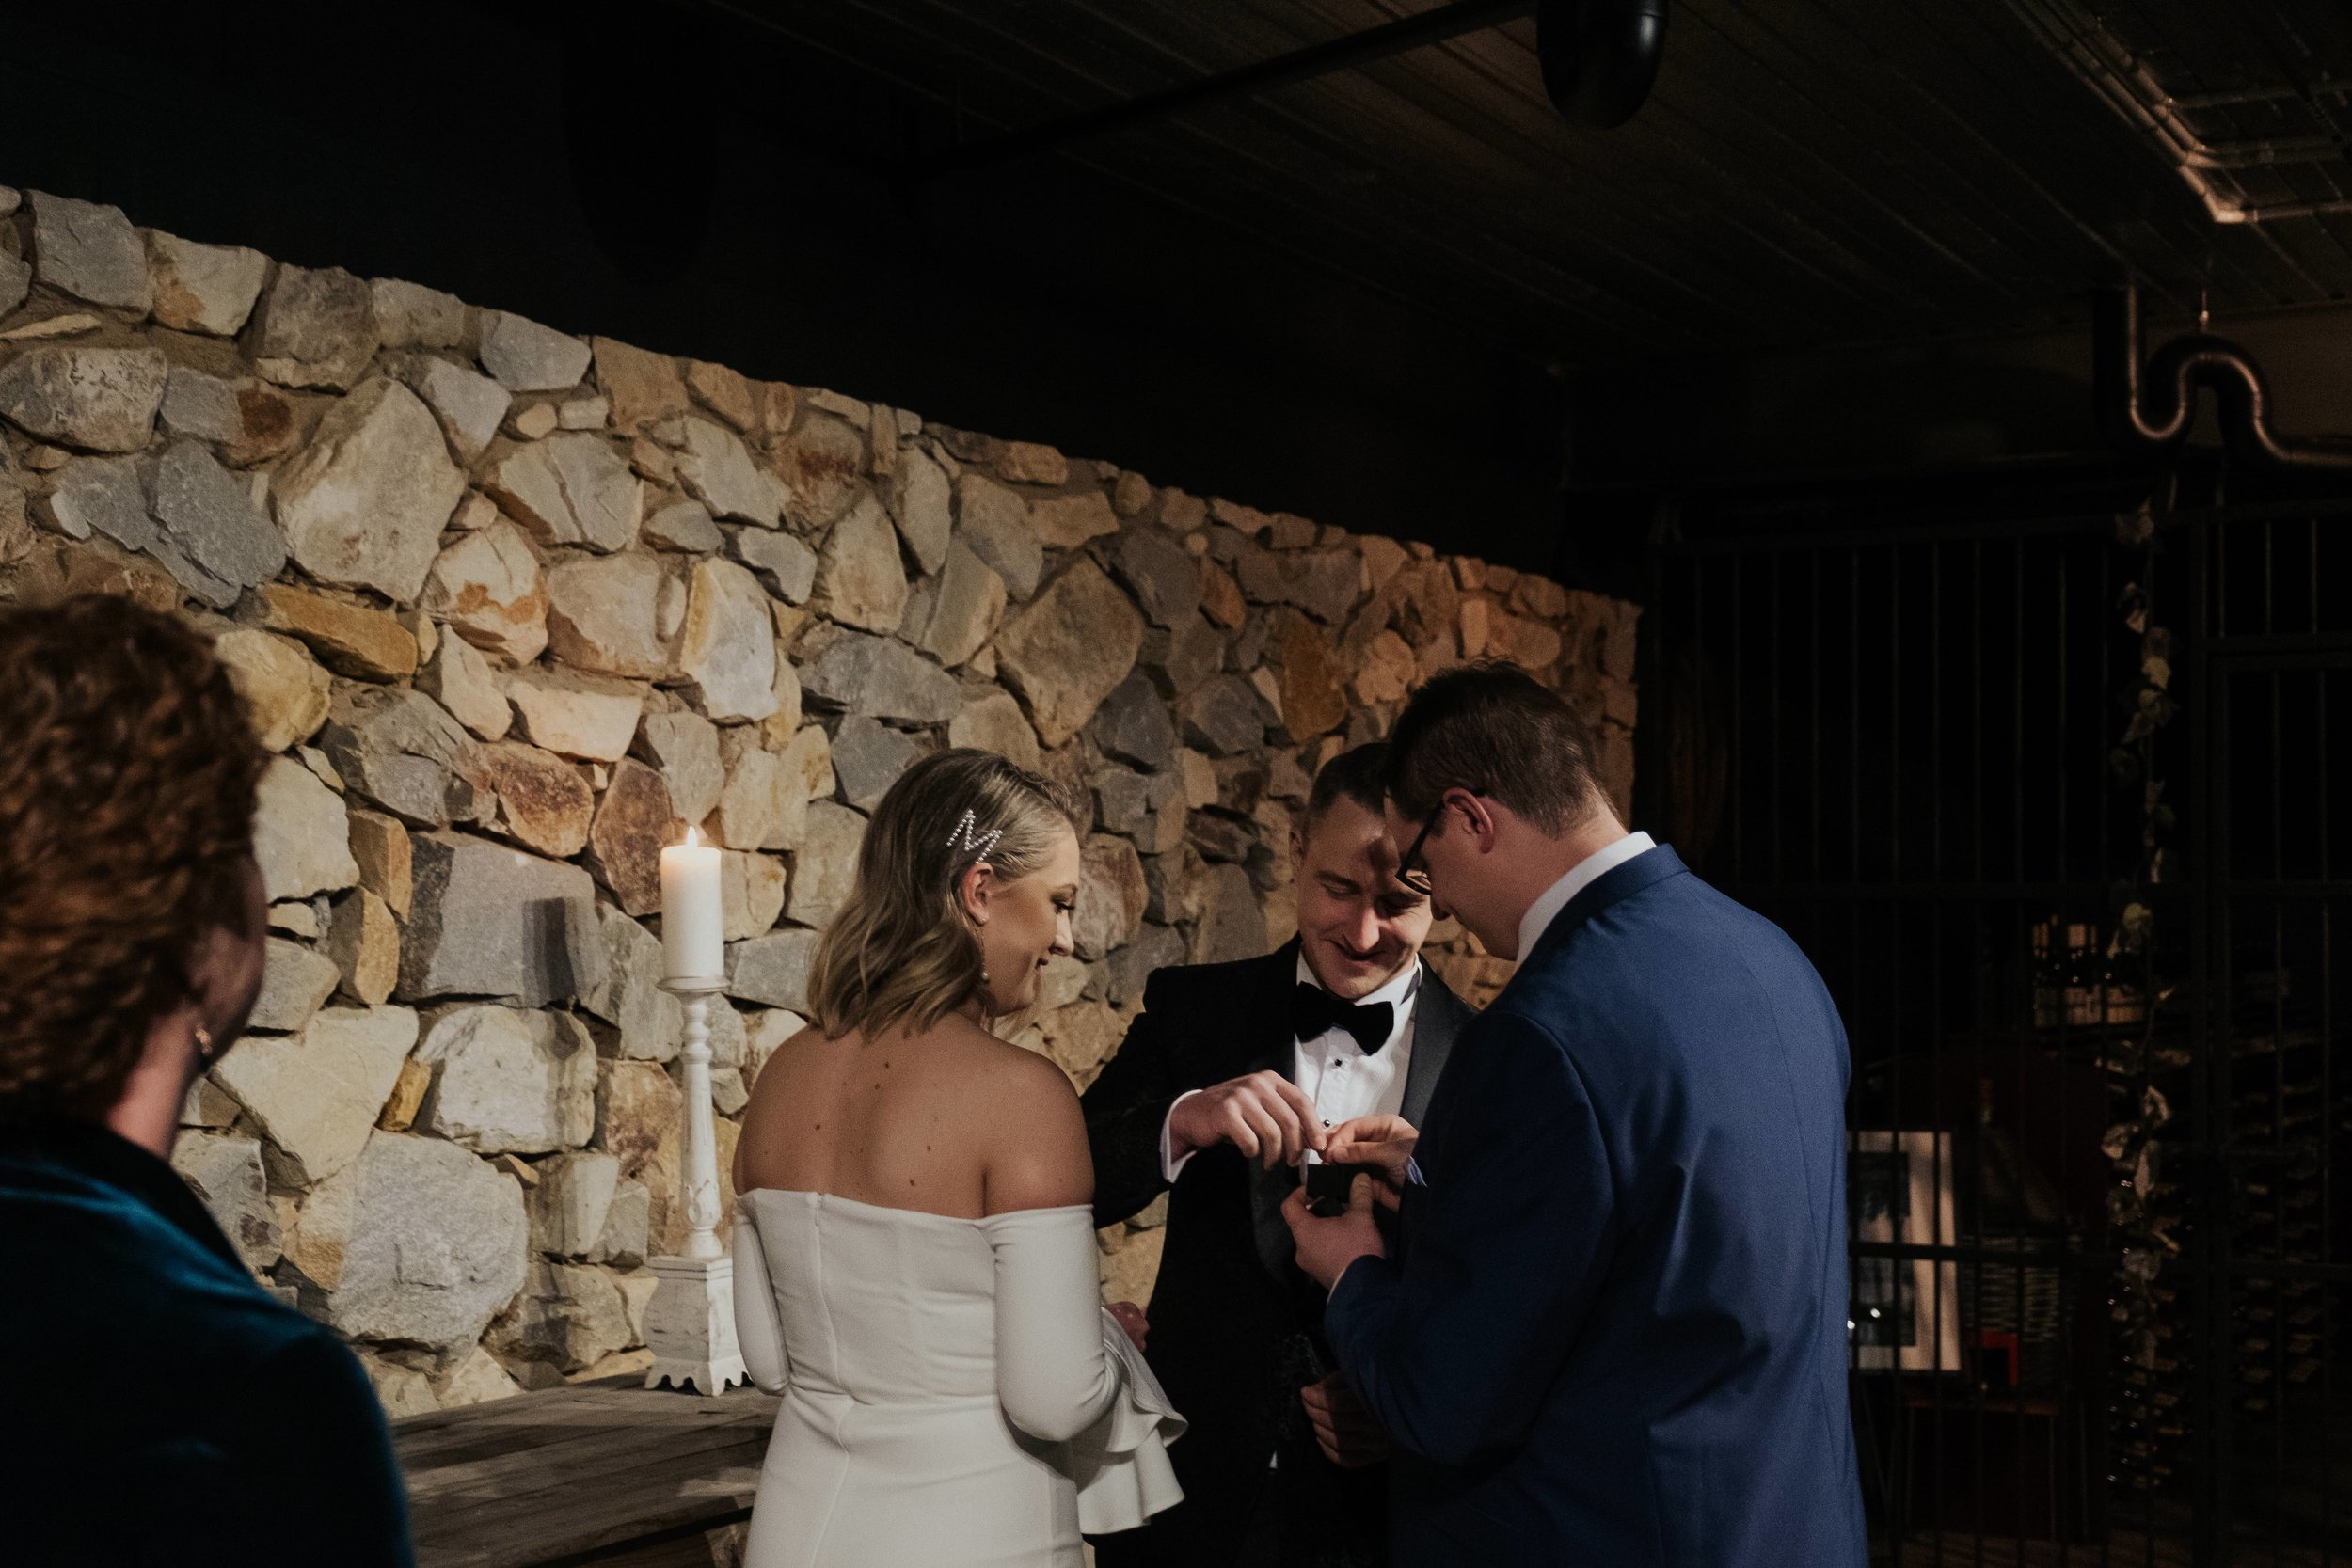 Grace and Mark Lake George Winery Canberra Wedding by Milton Gan Photography 85.jpg